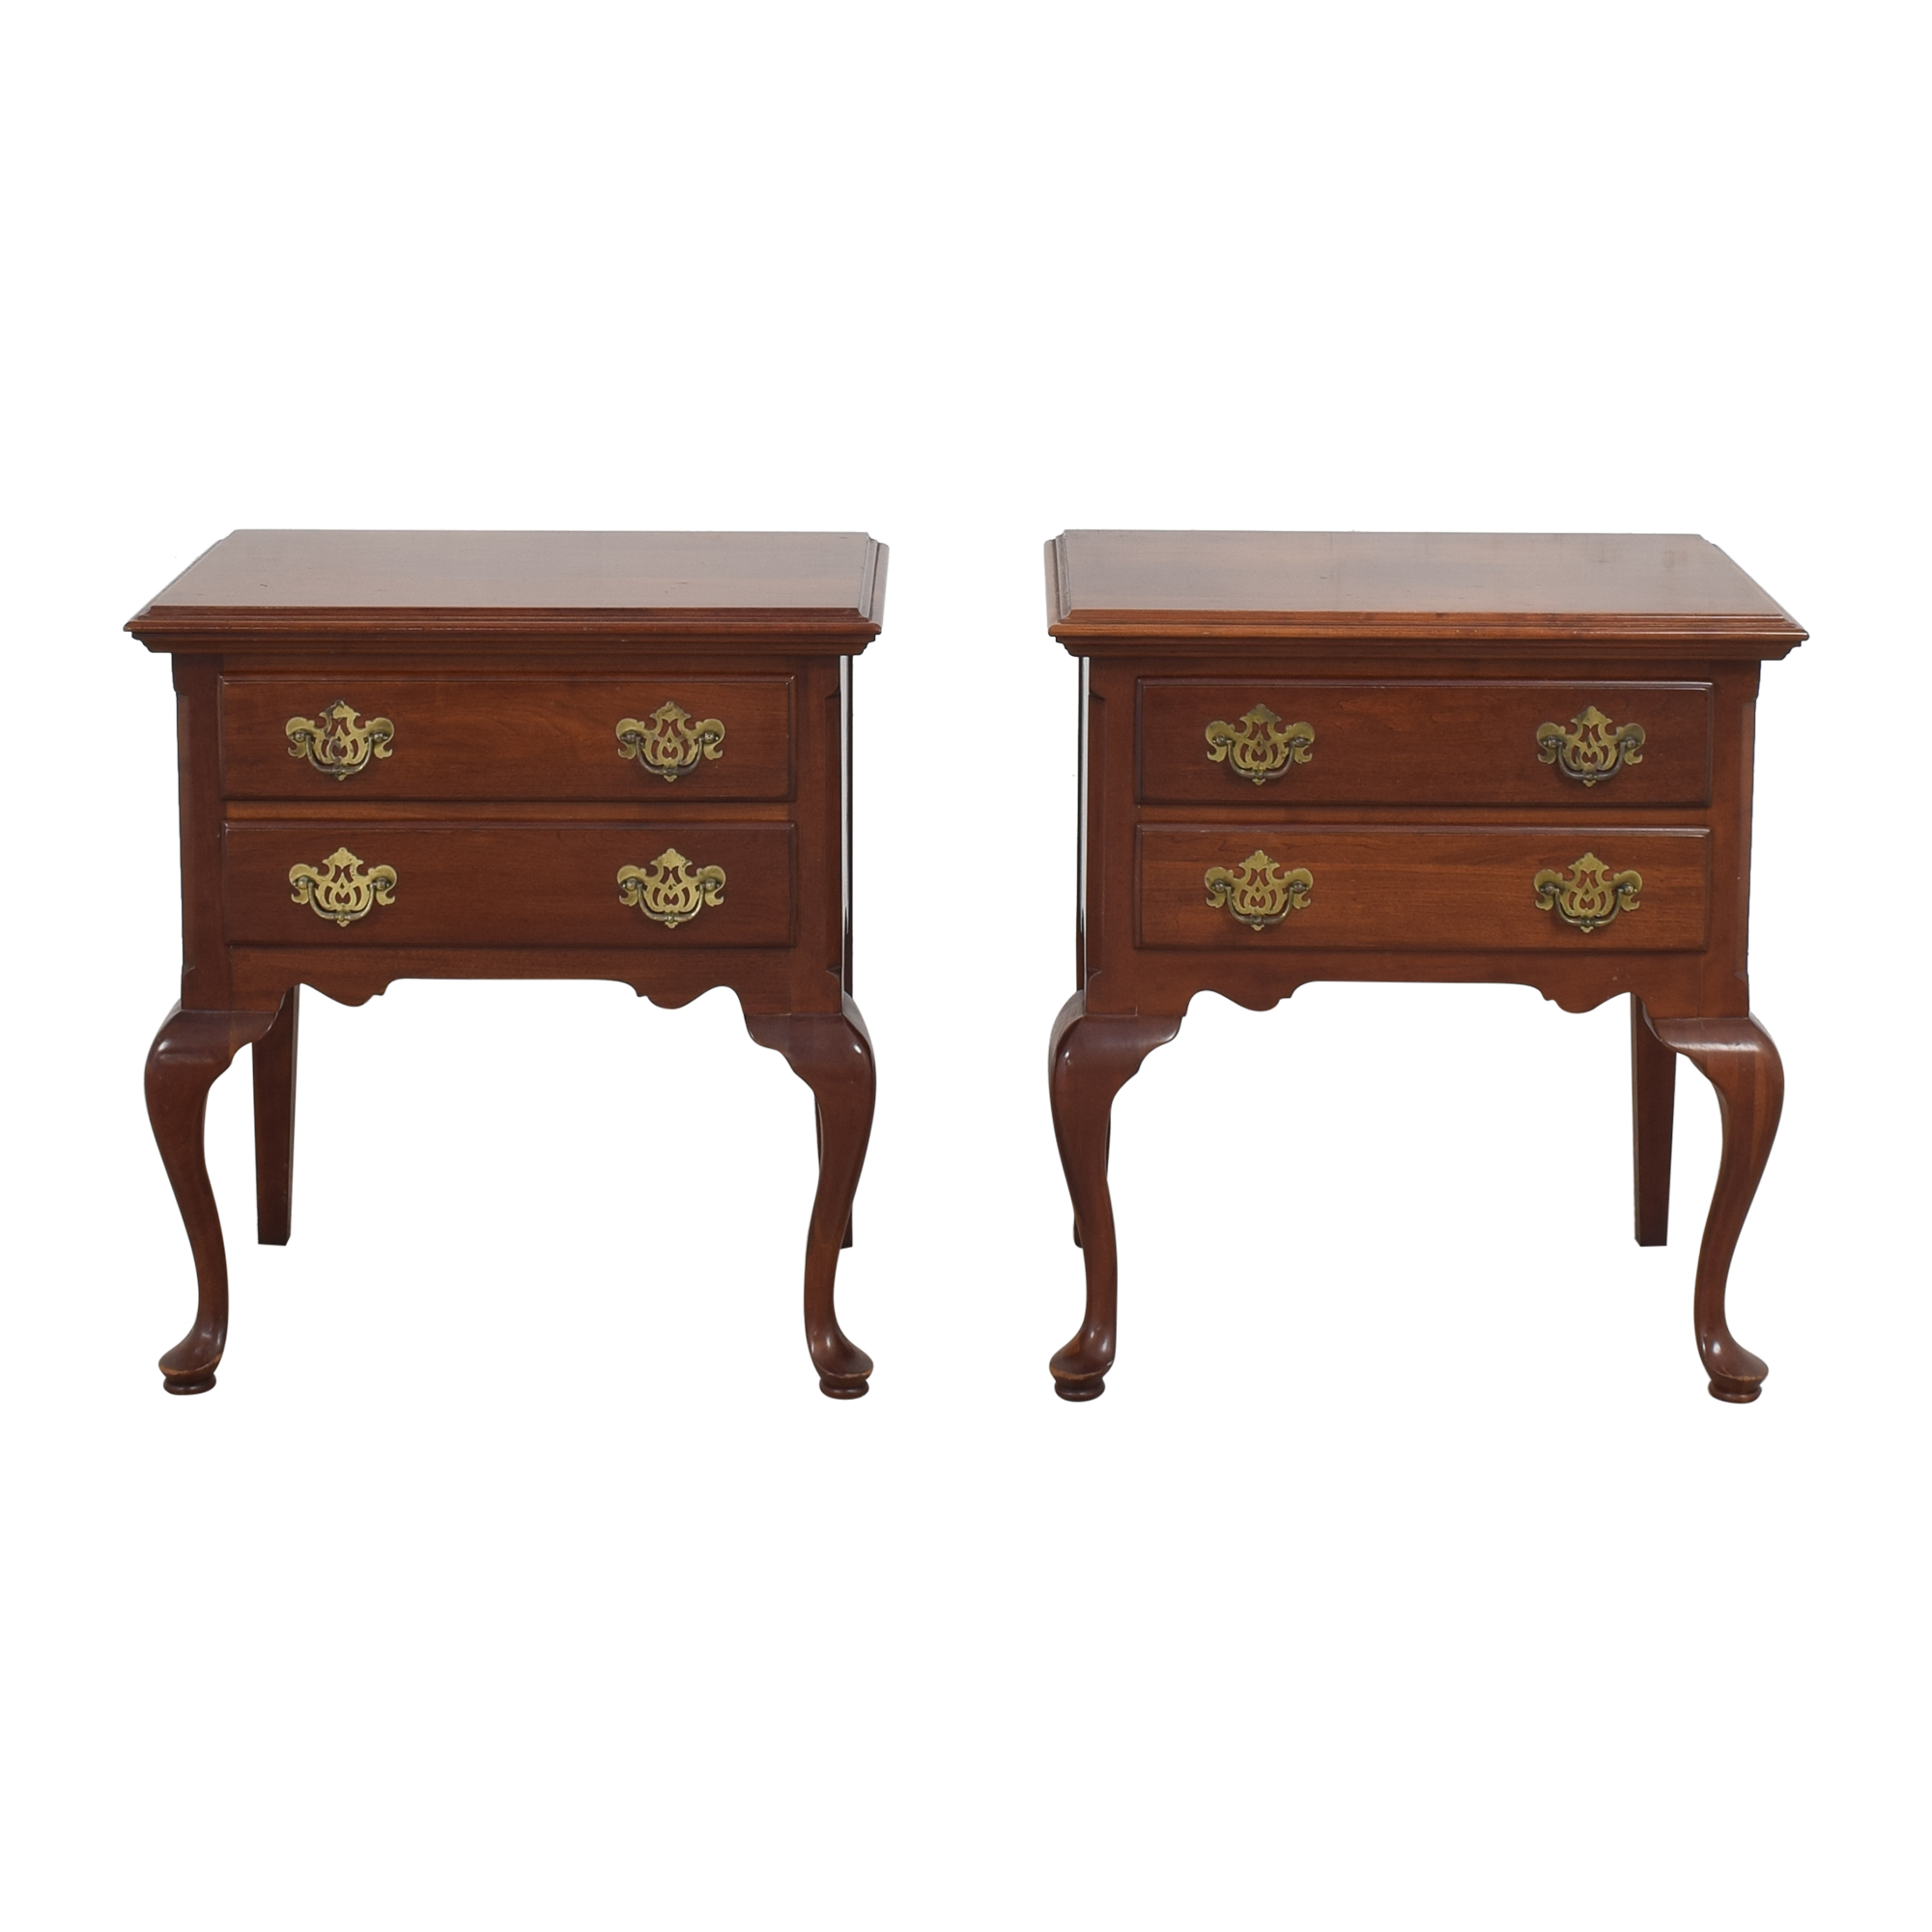 Knob Creek Knob Creek Two Drawer Nightstands dimensions